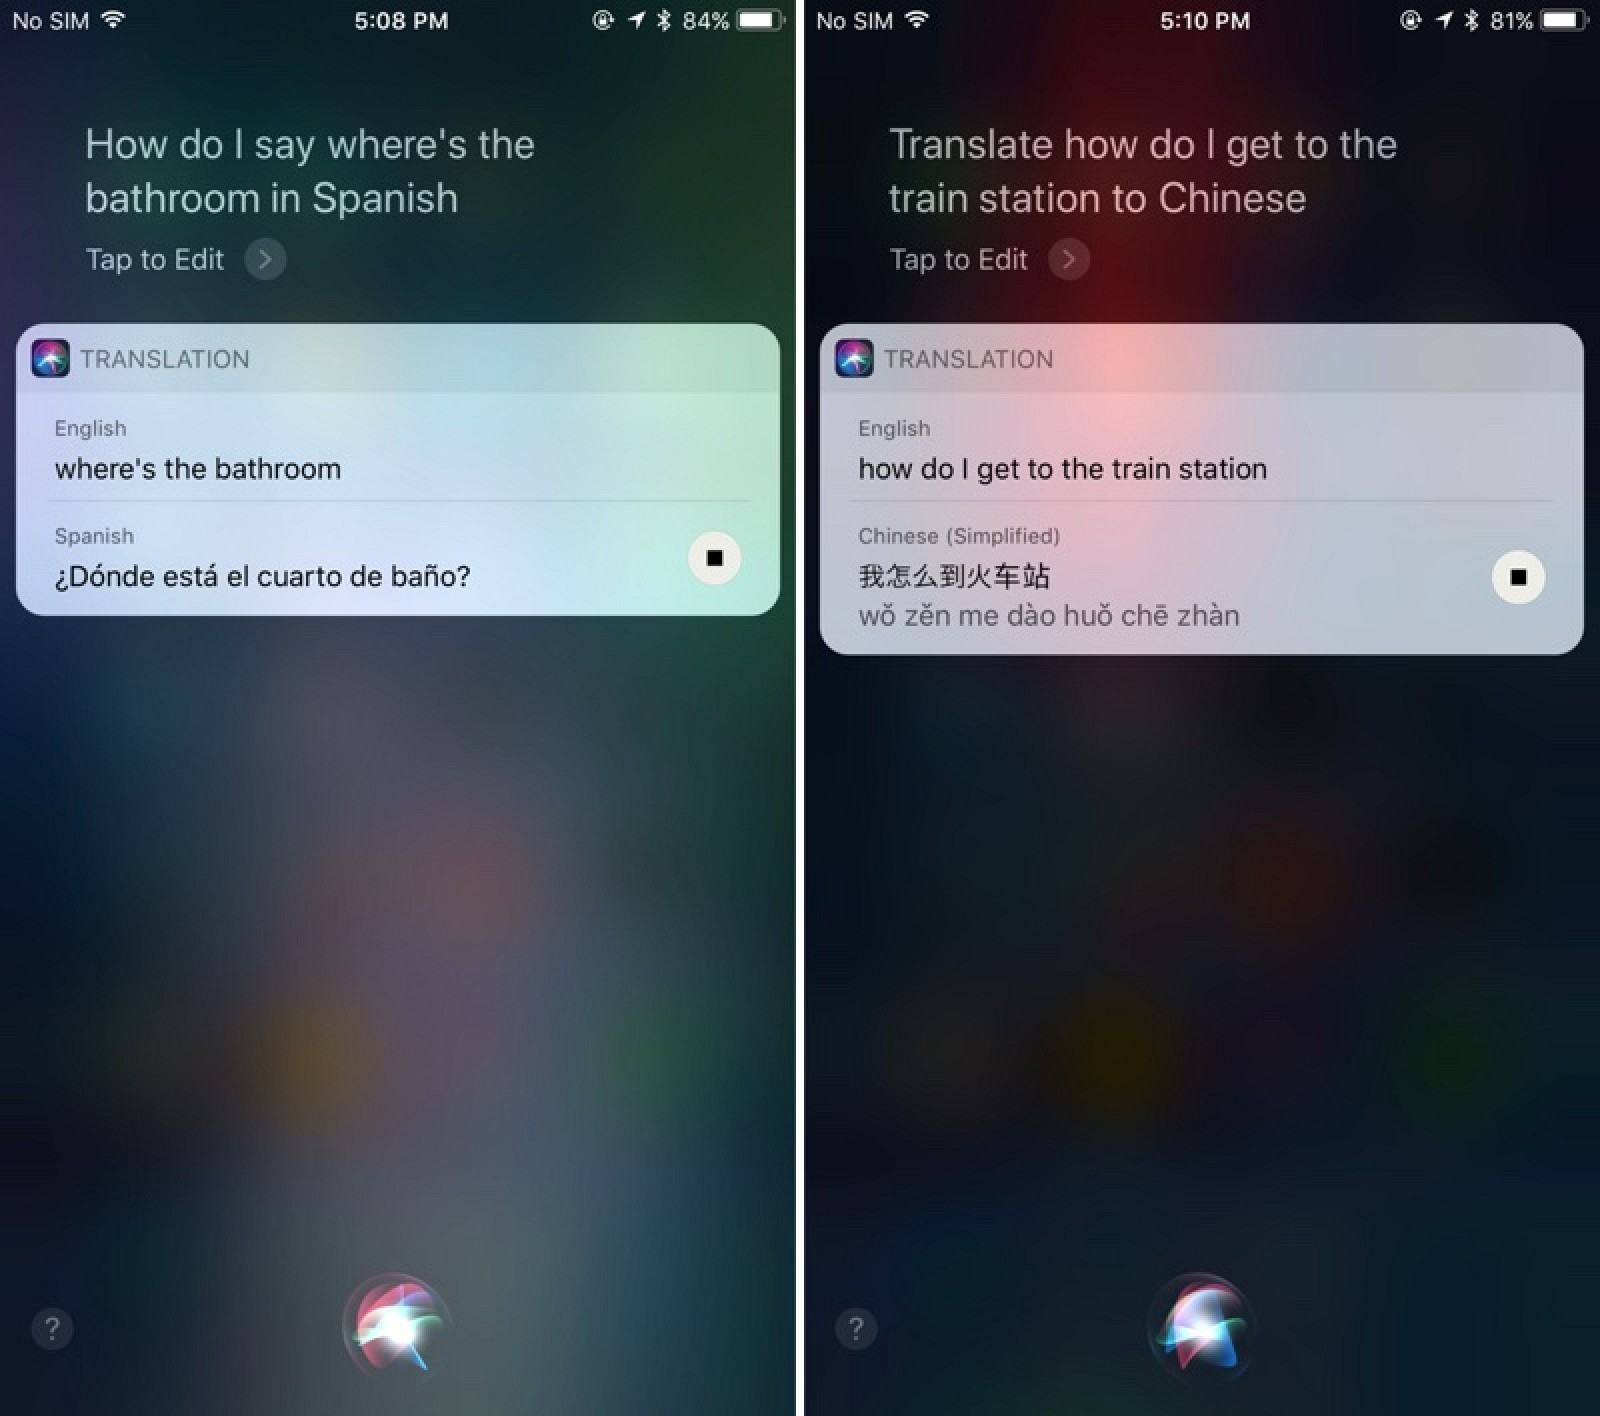 How to Use Siri's New Translation Feature in iOS 11 - MacRumors